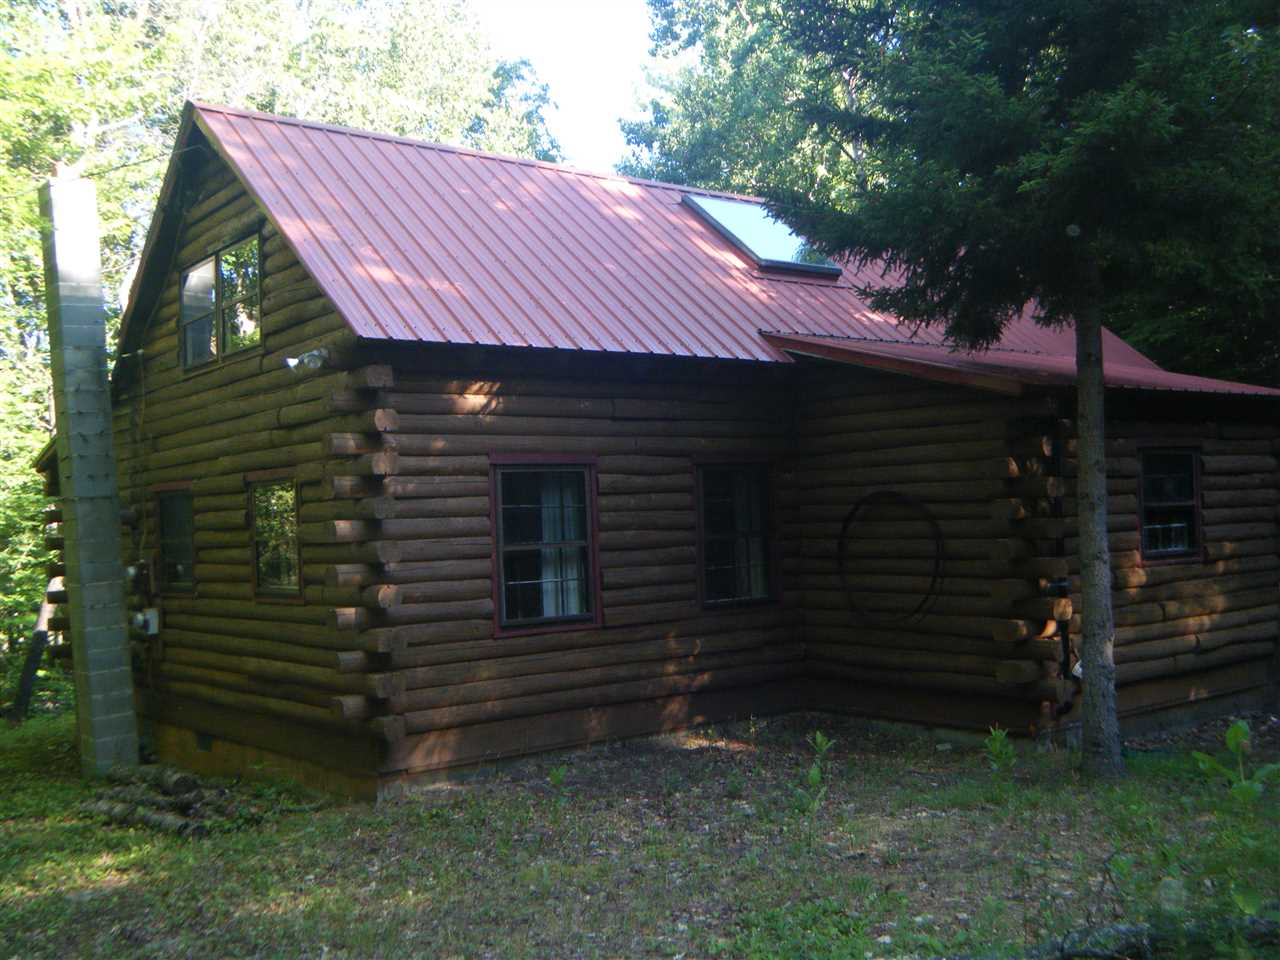 This rustic Log Cabin sits nestled among stately...